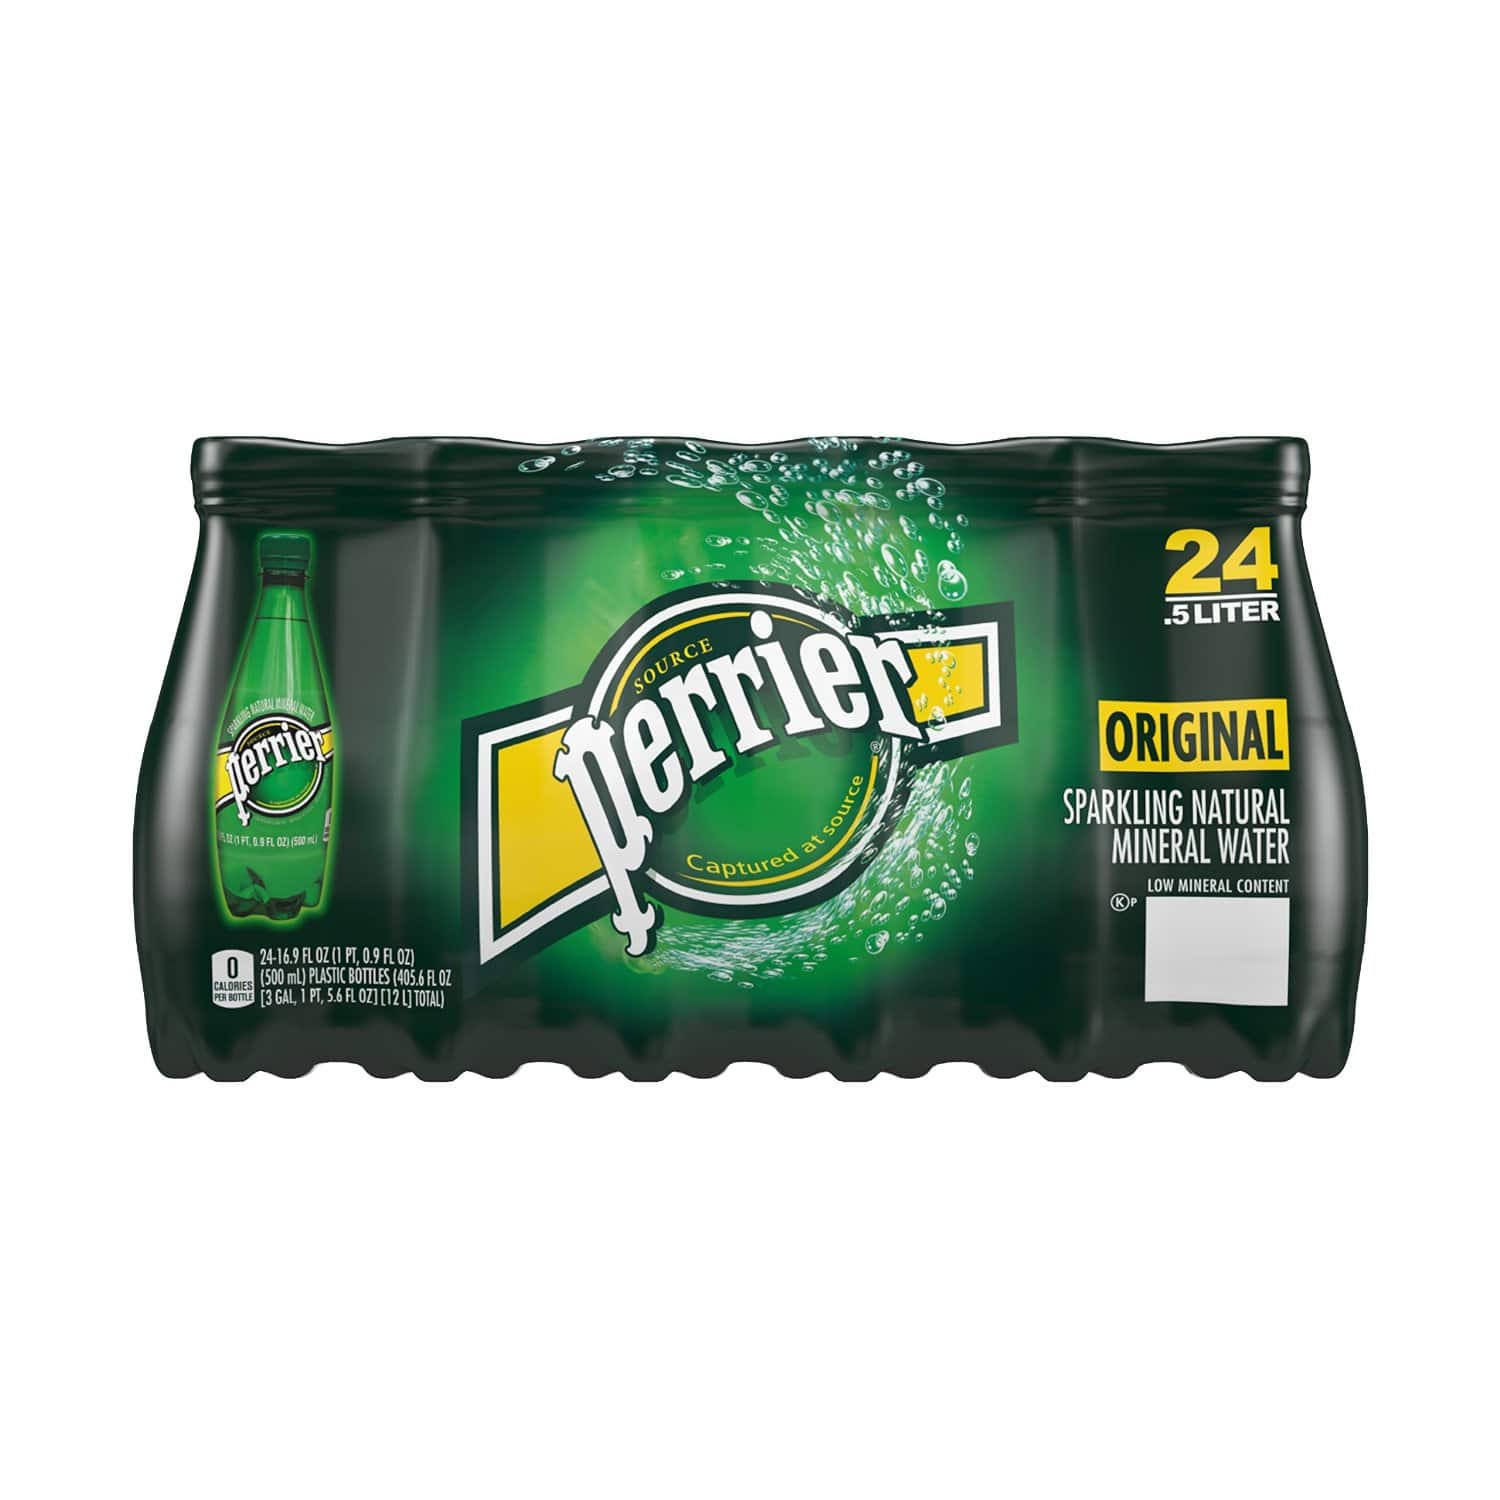 Perrier Sparkling Natural Mineral Water, 16.9-ounce plastic bottles 24-Pack $15.12 (5% S&S) or $13.53 (15% S&S) @ amazon